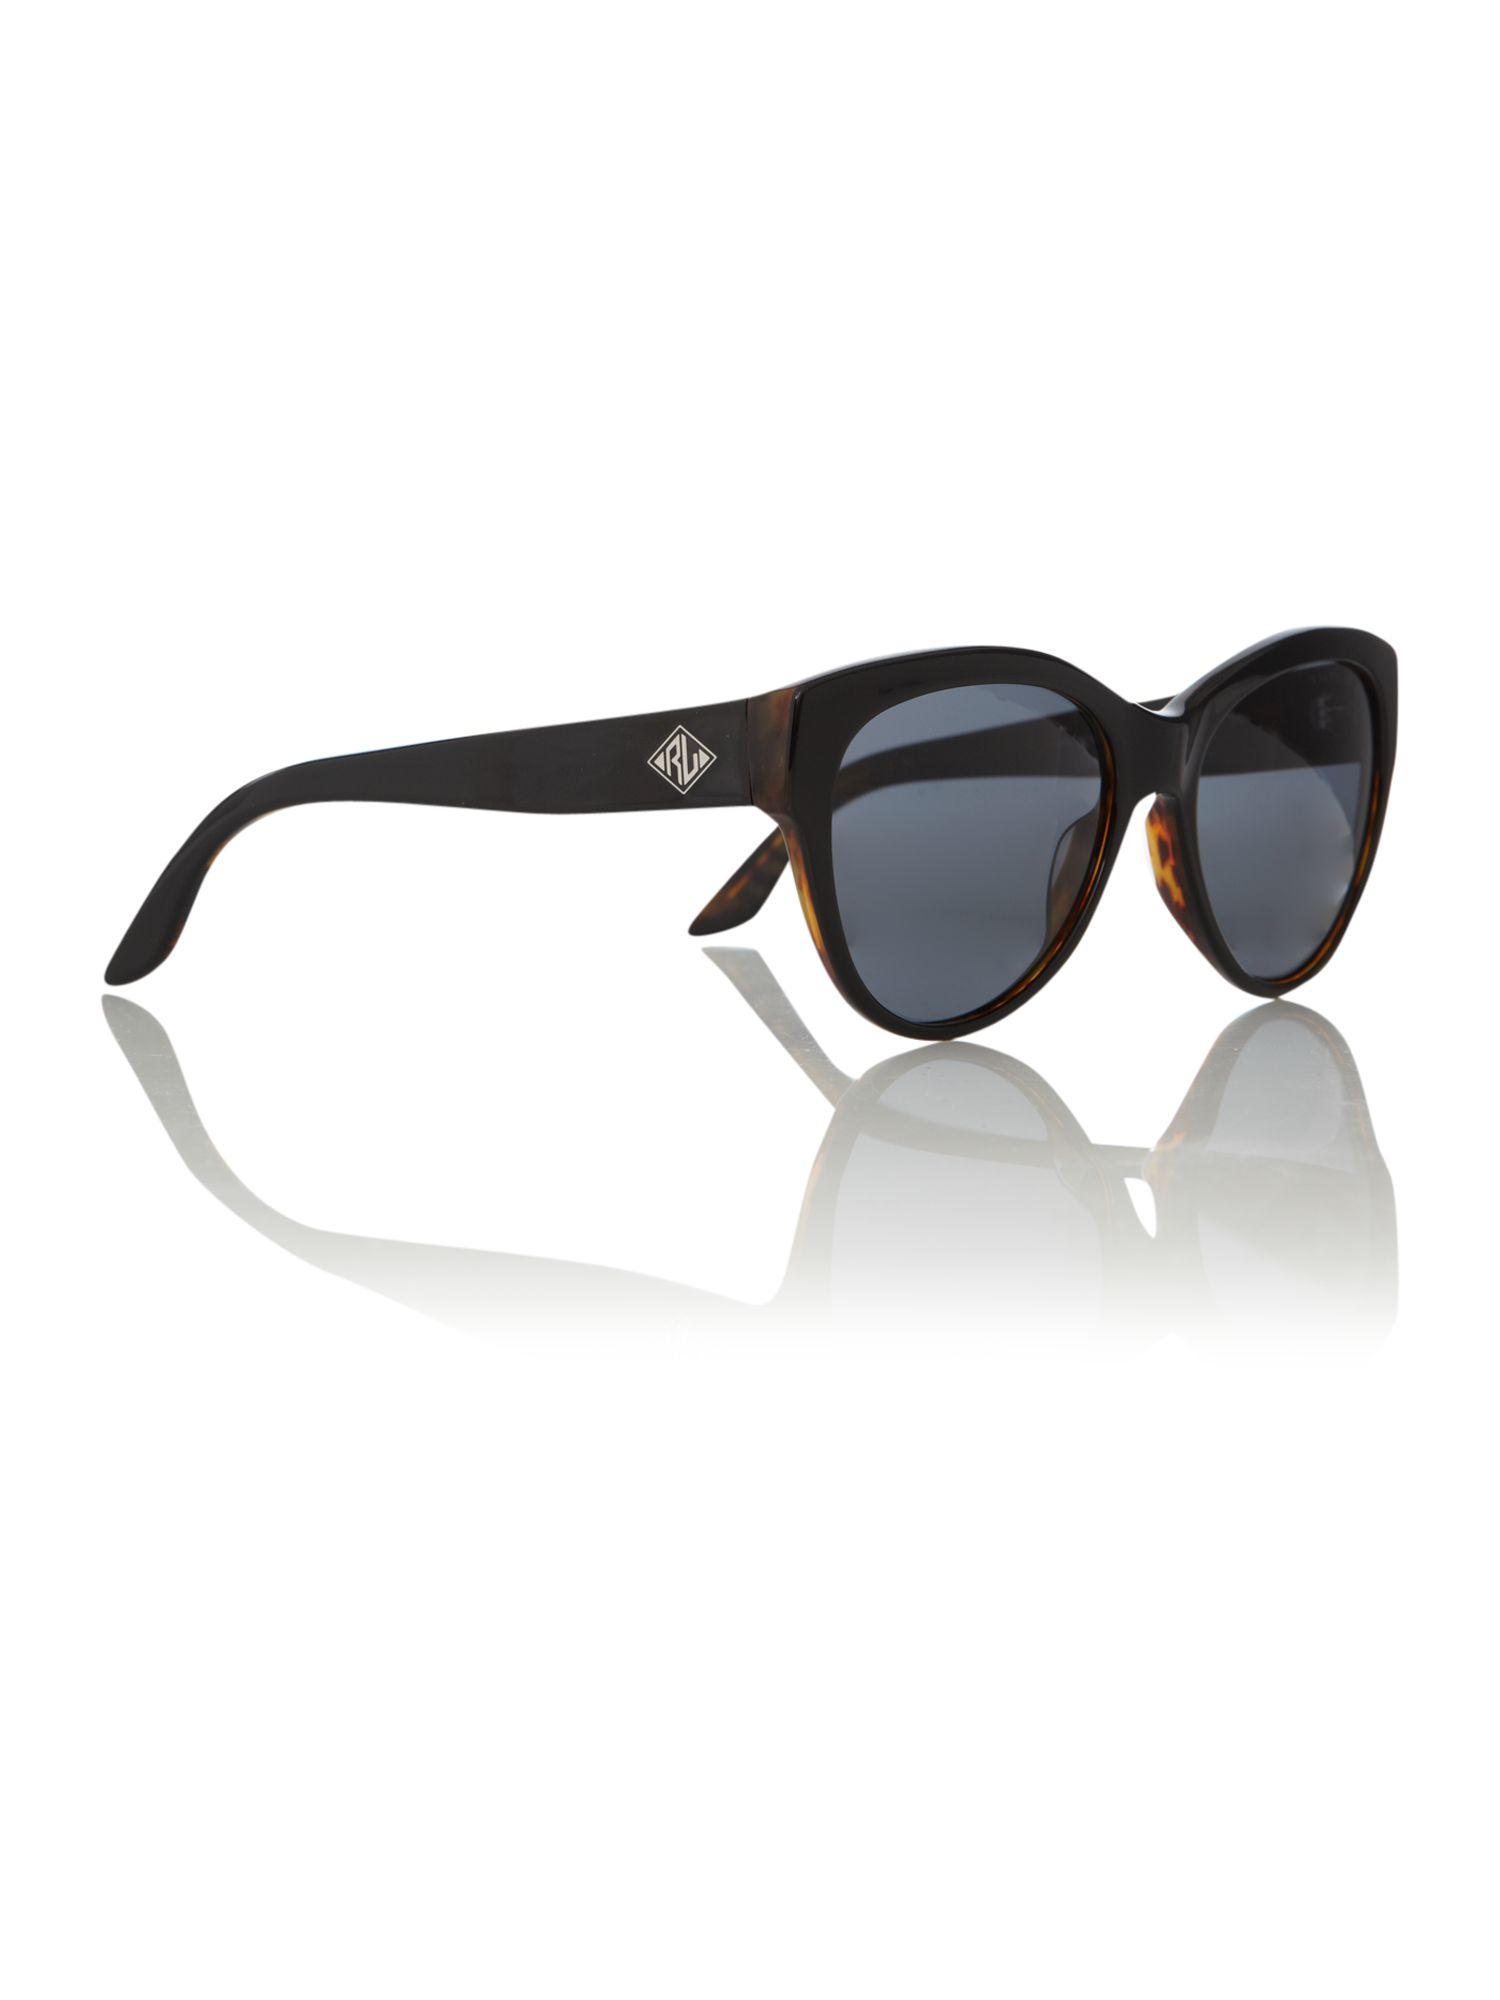 Ladies RL8089 Art Deco Black/Havana Sunglasses